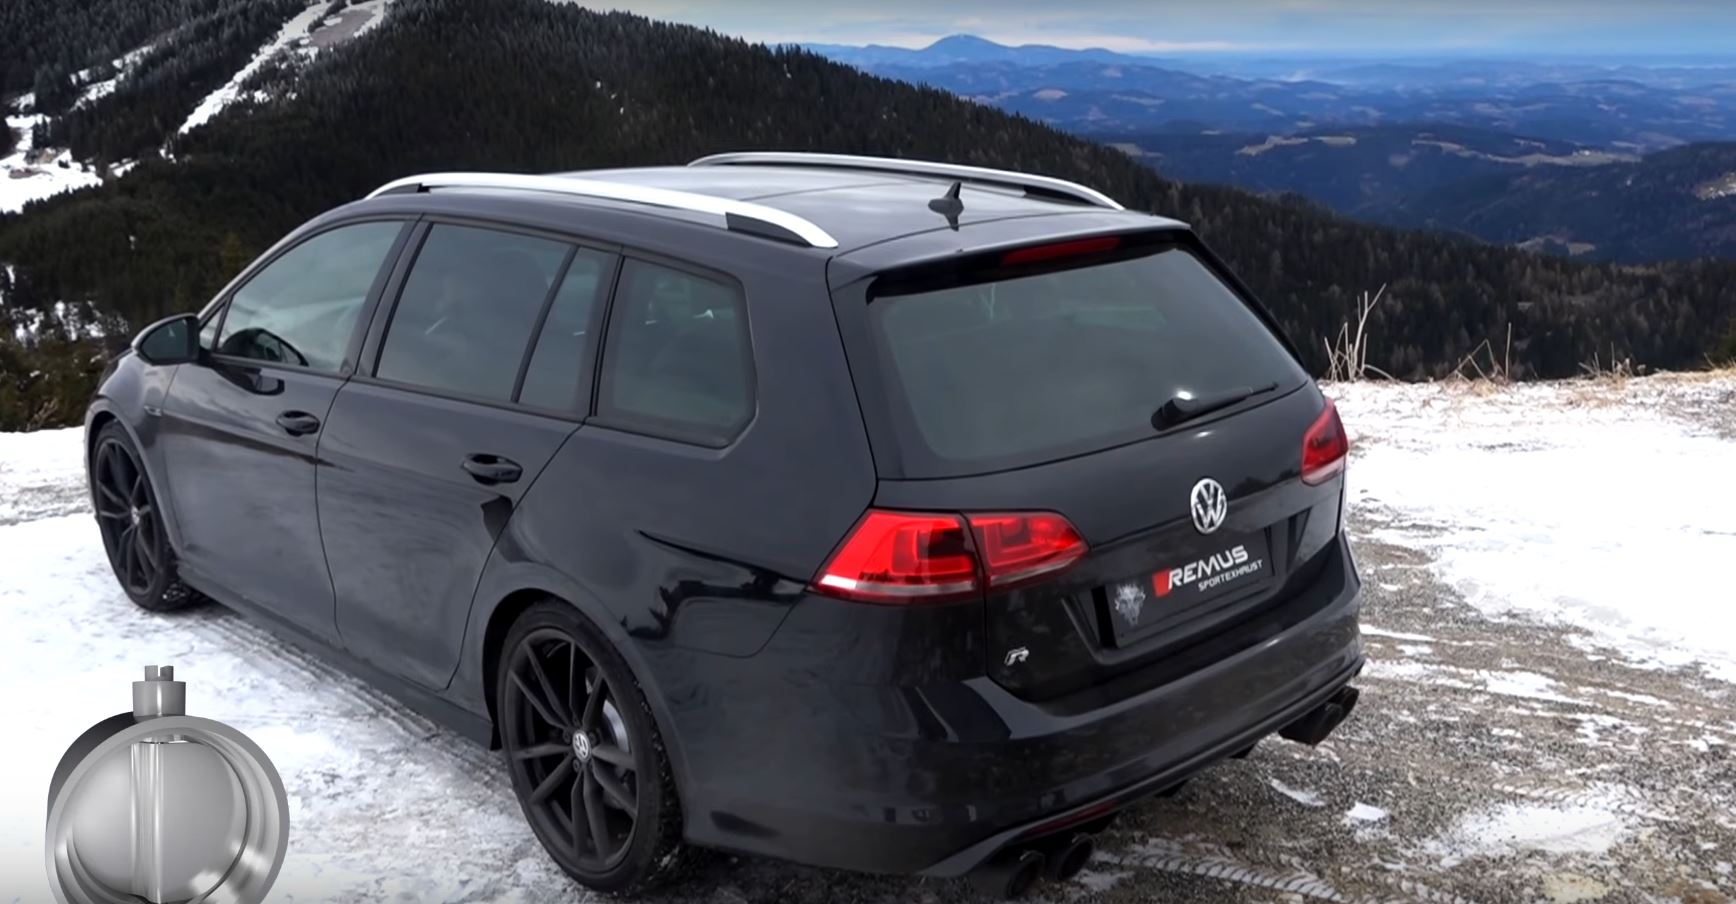 Volkswagen Bus with 560 HP Subaru Engine Is a Weird Pickup Truck: 12s Quarter Mile - autoevolution